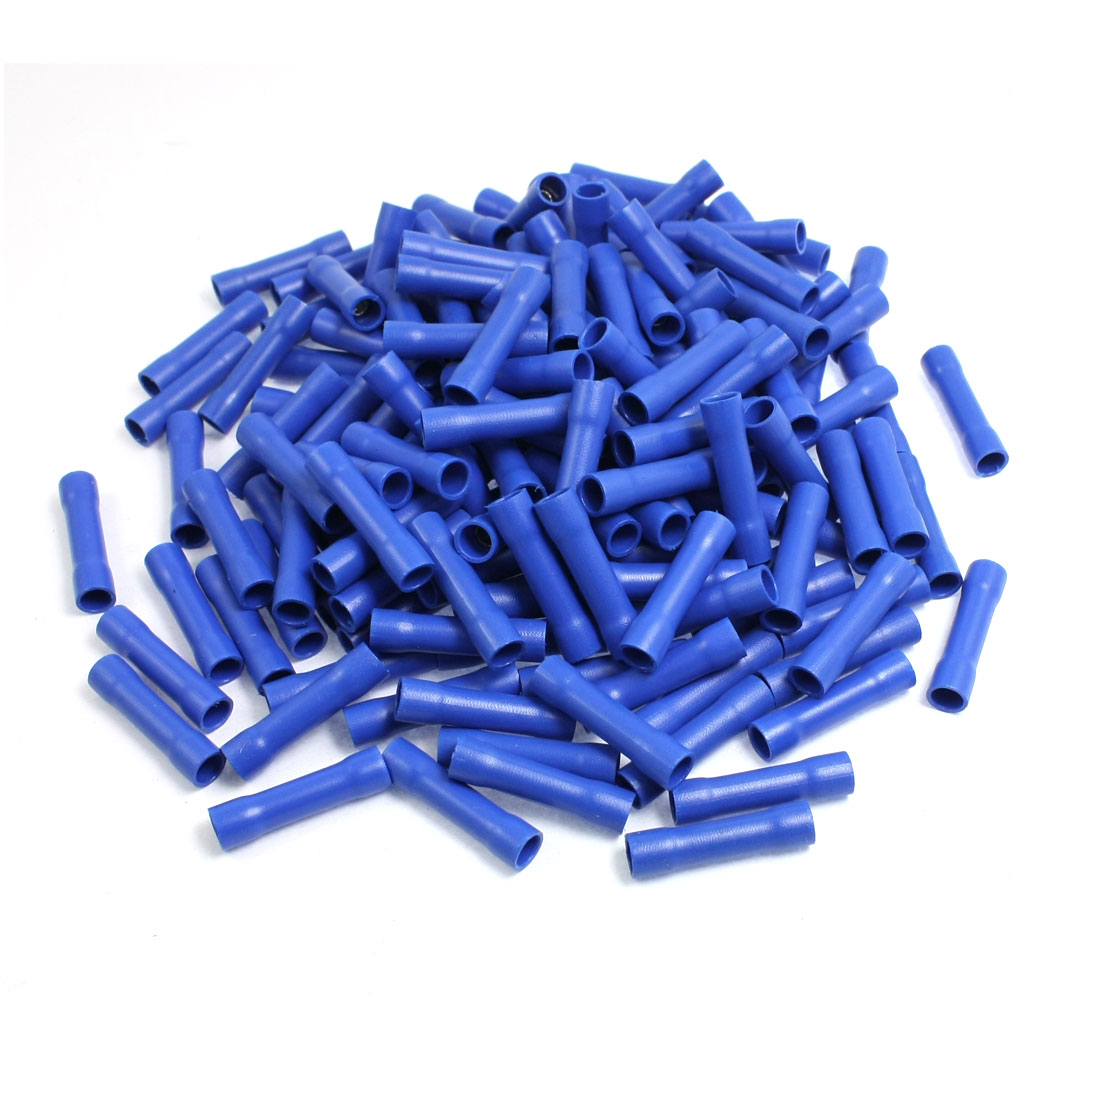 FRD2-195 Blue PVC Insulating Female Crimp Cable Terminals Connectors 200pcs